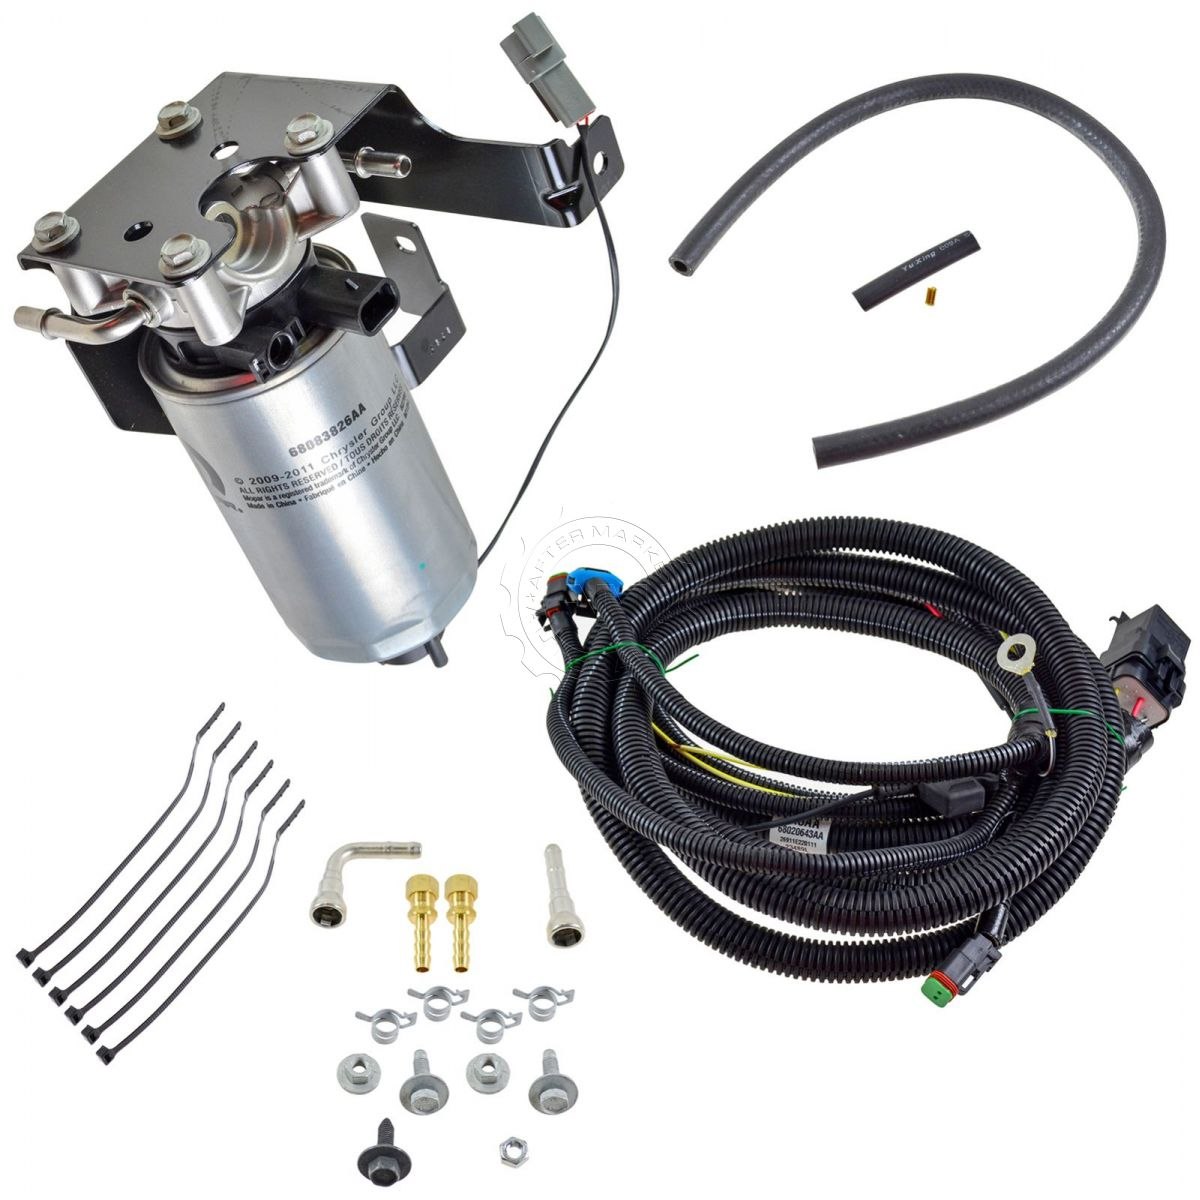 oem severe duty add on fuel filter system kit for dodge. Black Bedroom Furniture Sets. Home Design Ideas